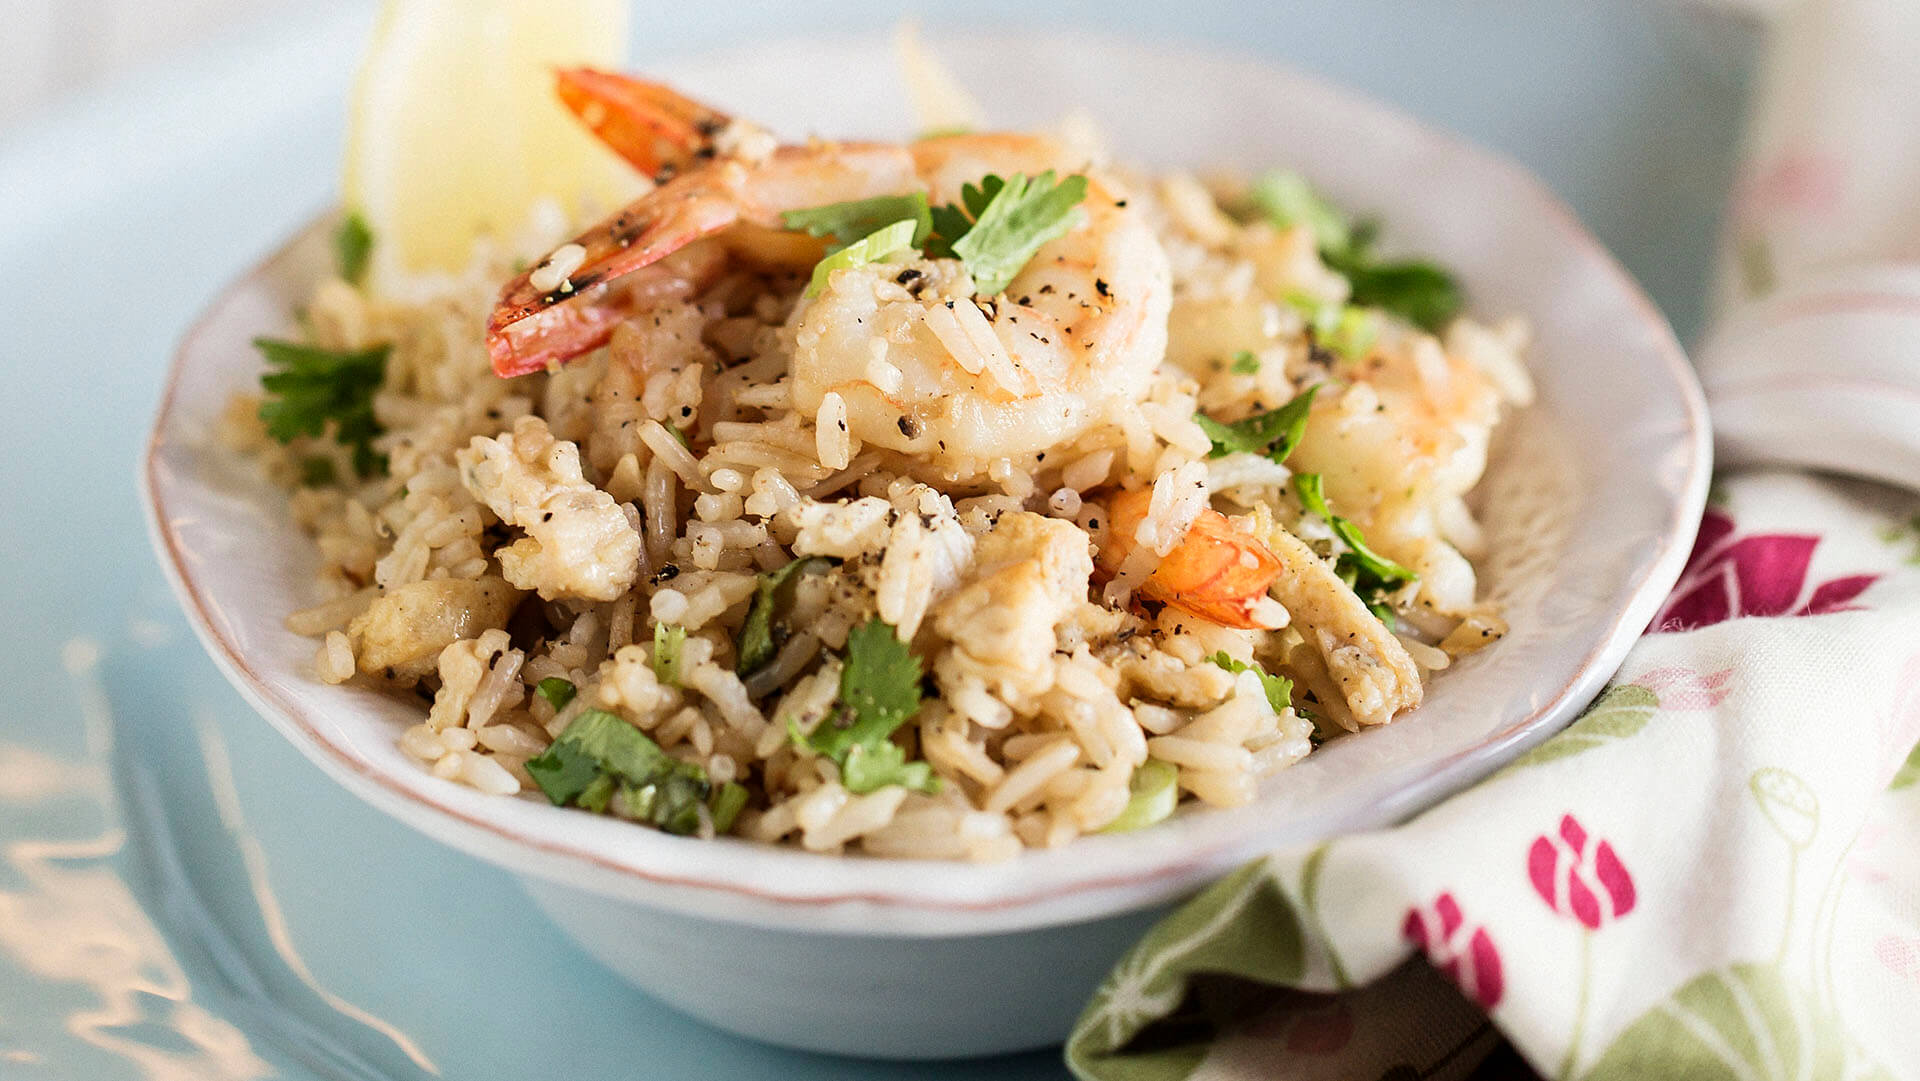 Marion Grasby's Thai prawn fried rice